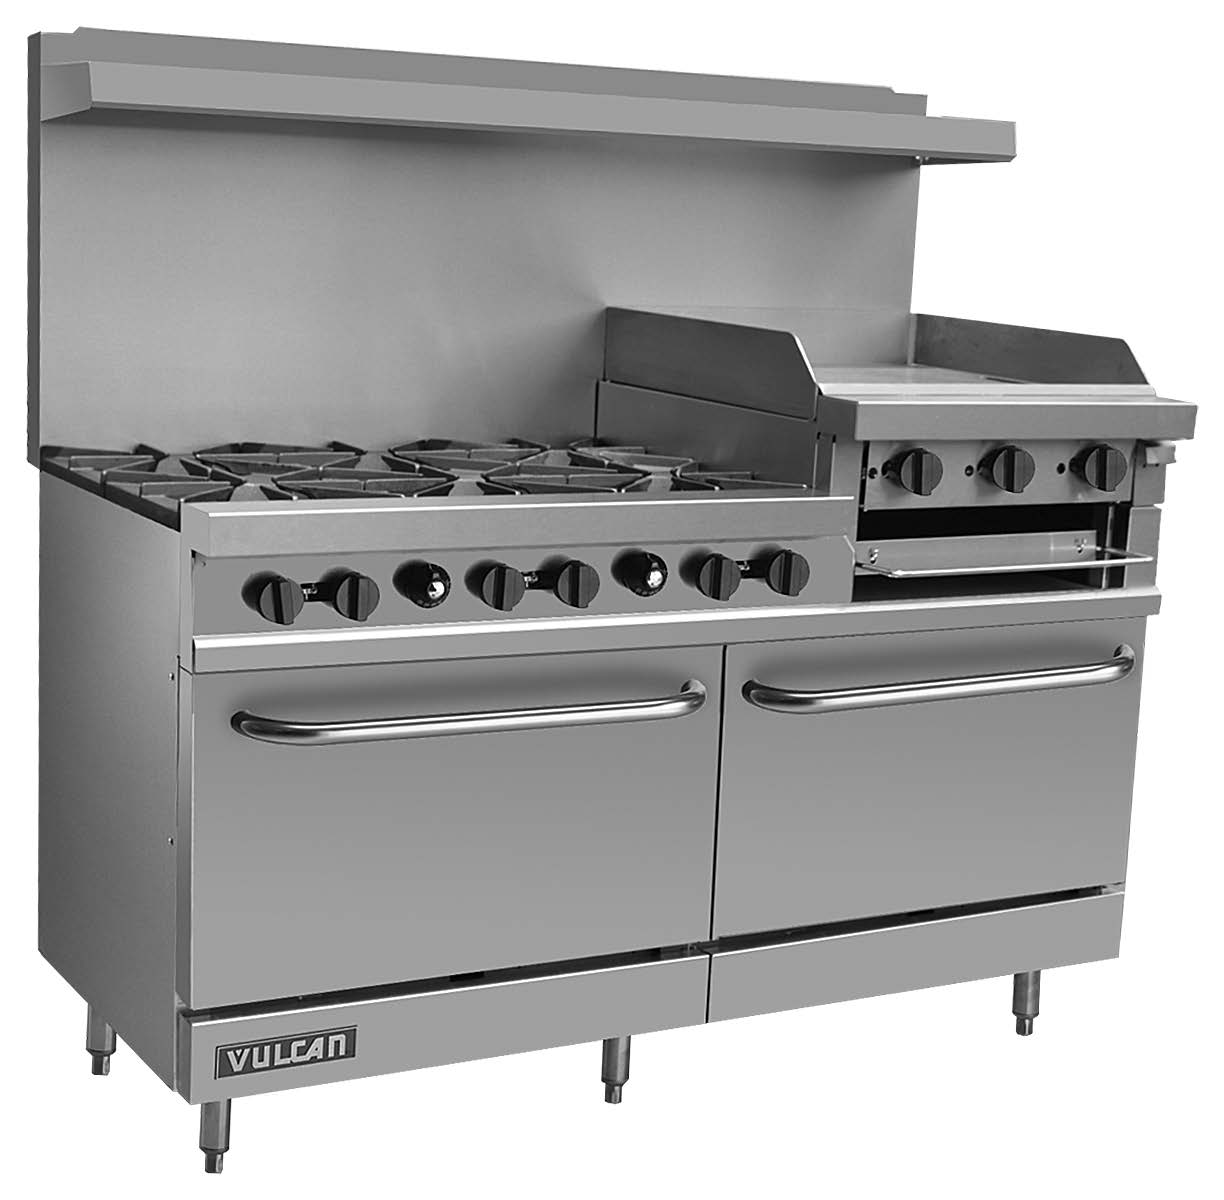 vulcan kitchen equipment professional oven wolf and economy value series ranges v260